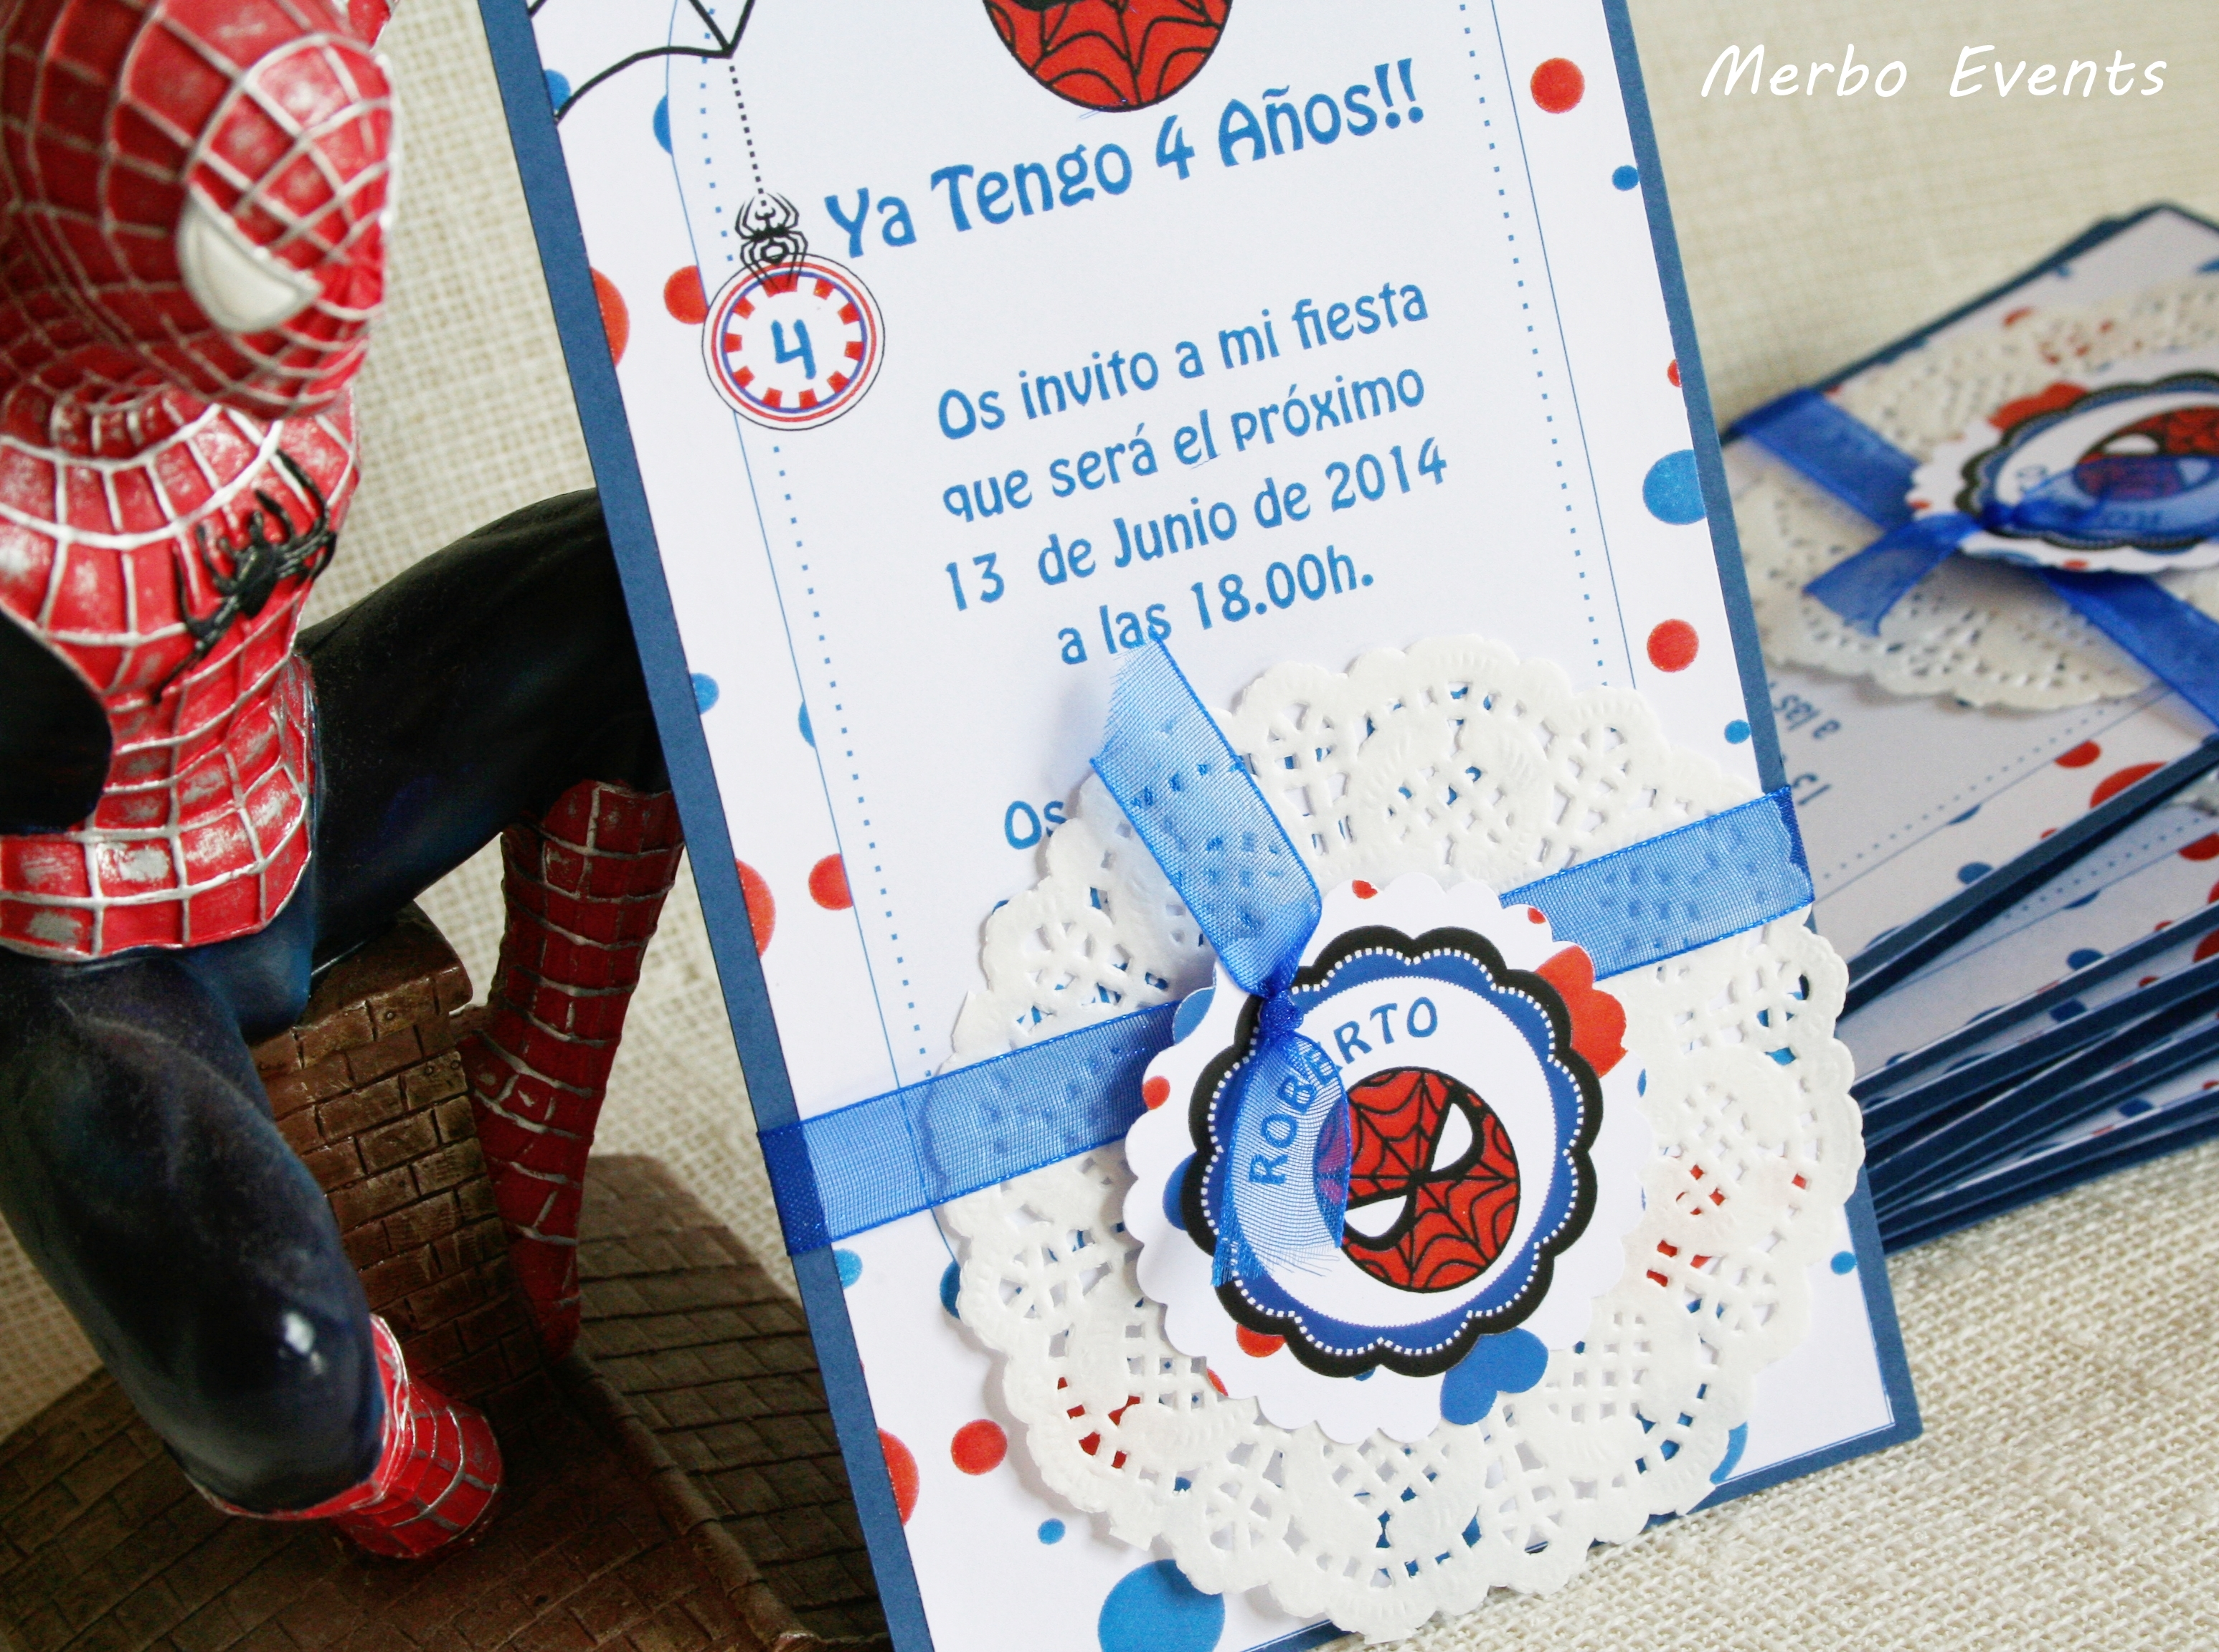 Invitaciones Cumpleaños Spiderman Merbo EVents